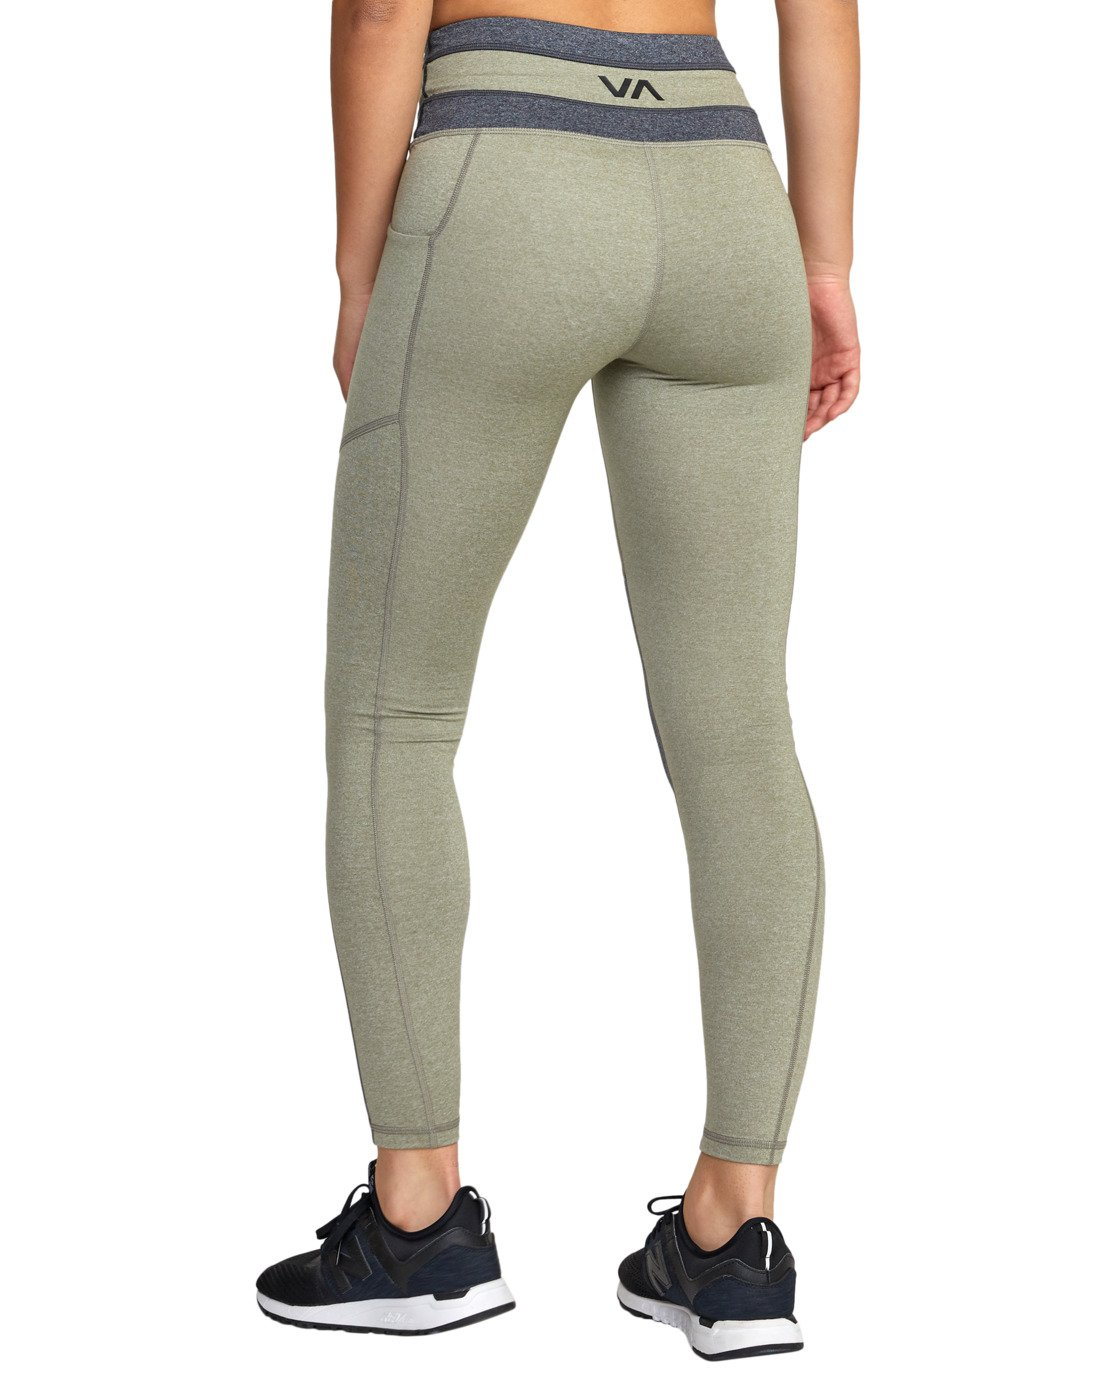 8 ATHLETIC LEGGING Multicolor TQ064RAL RVCA